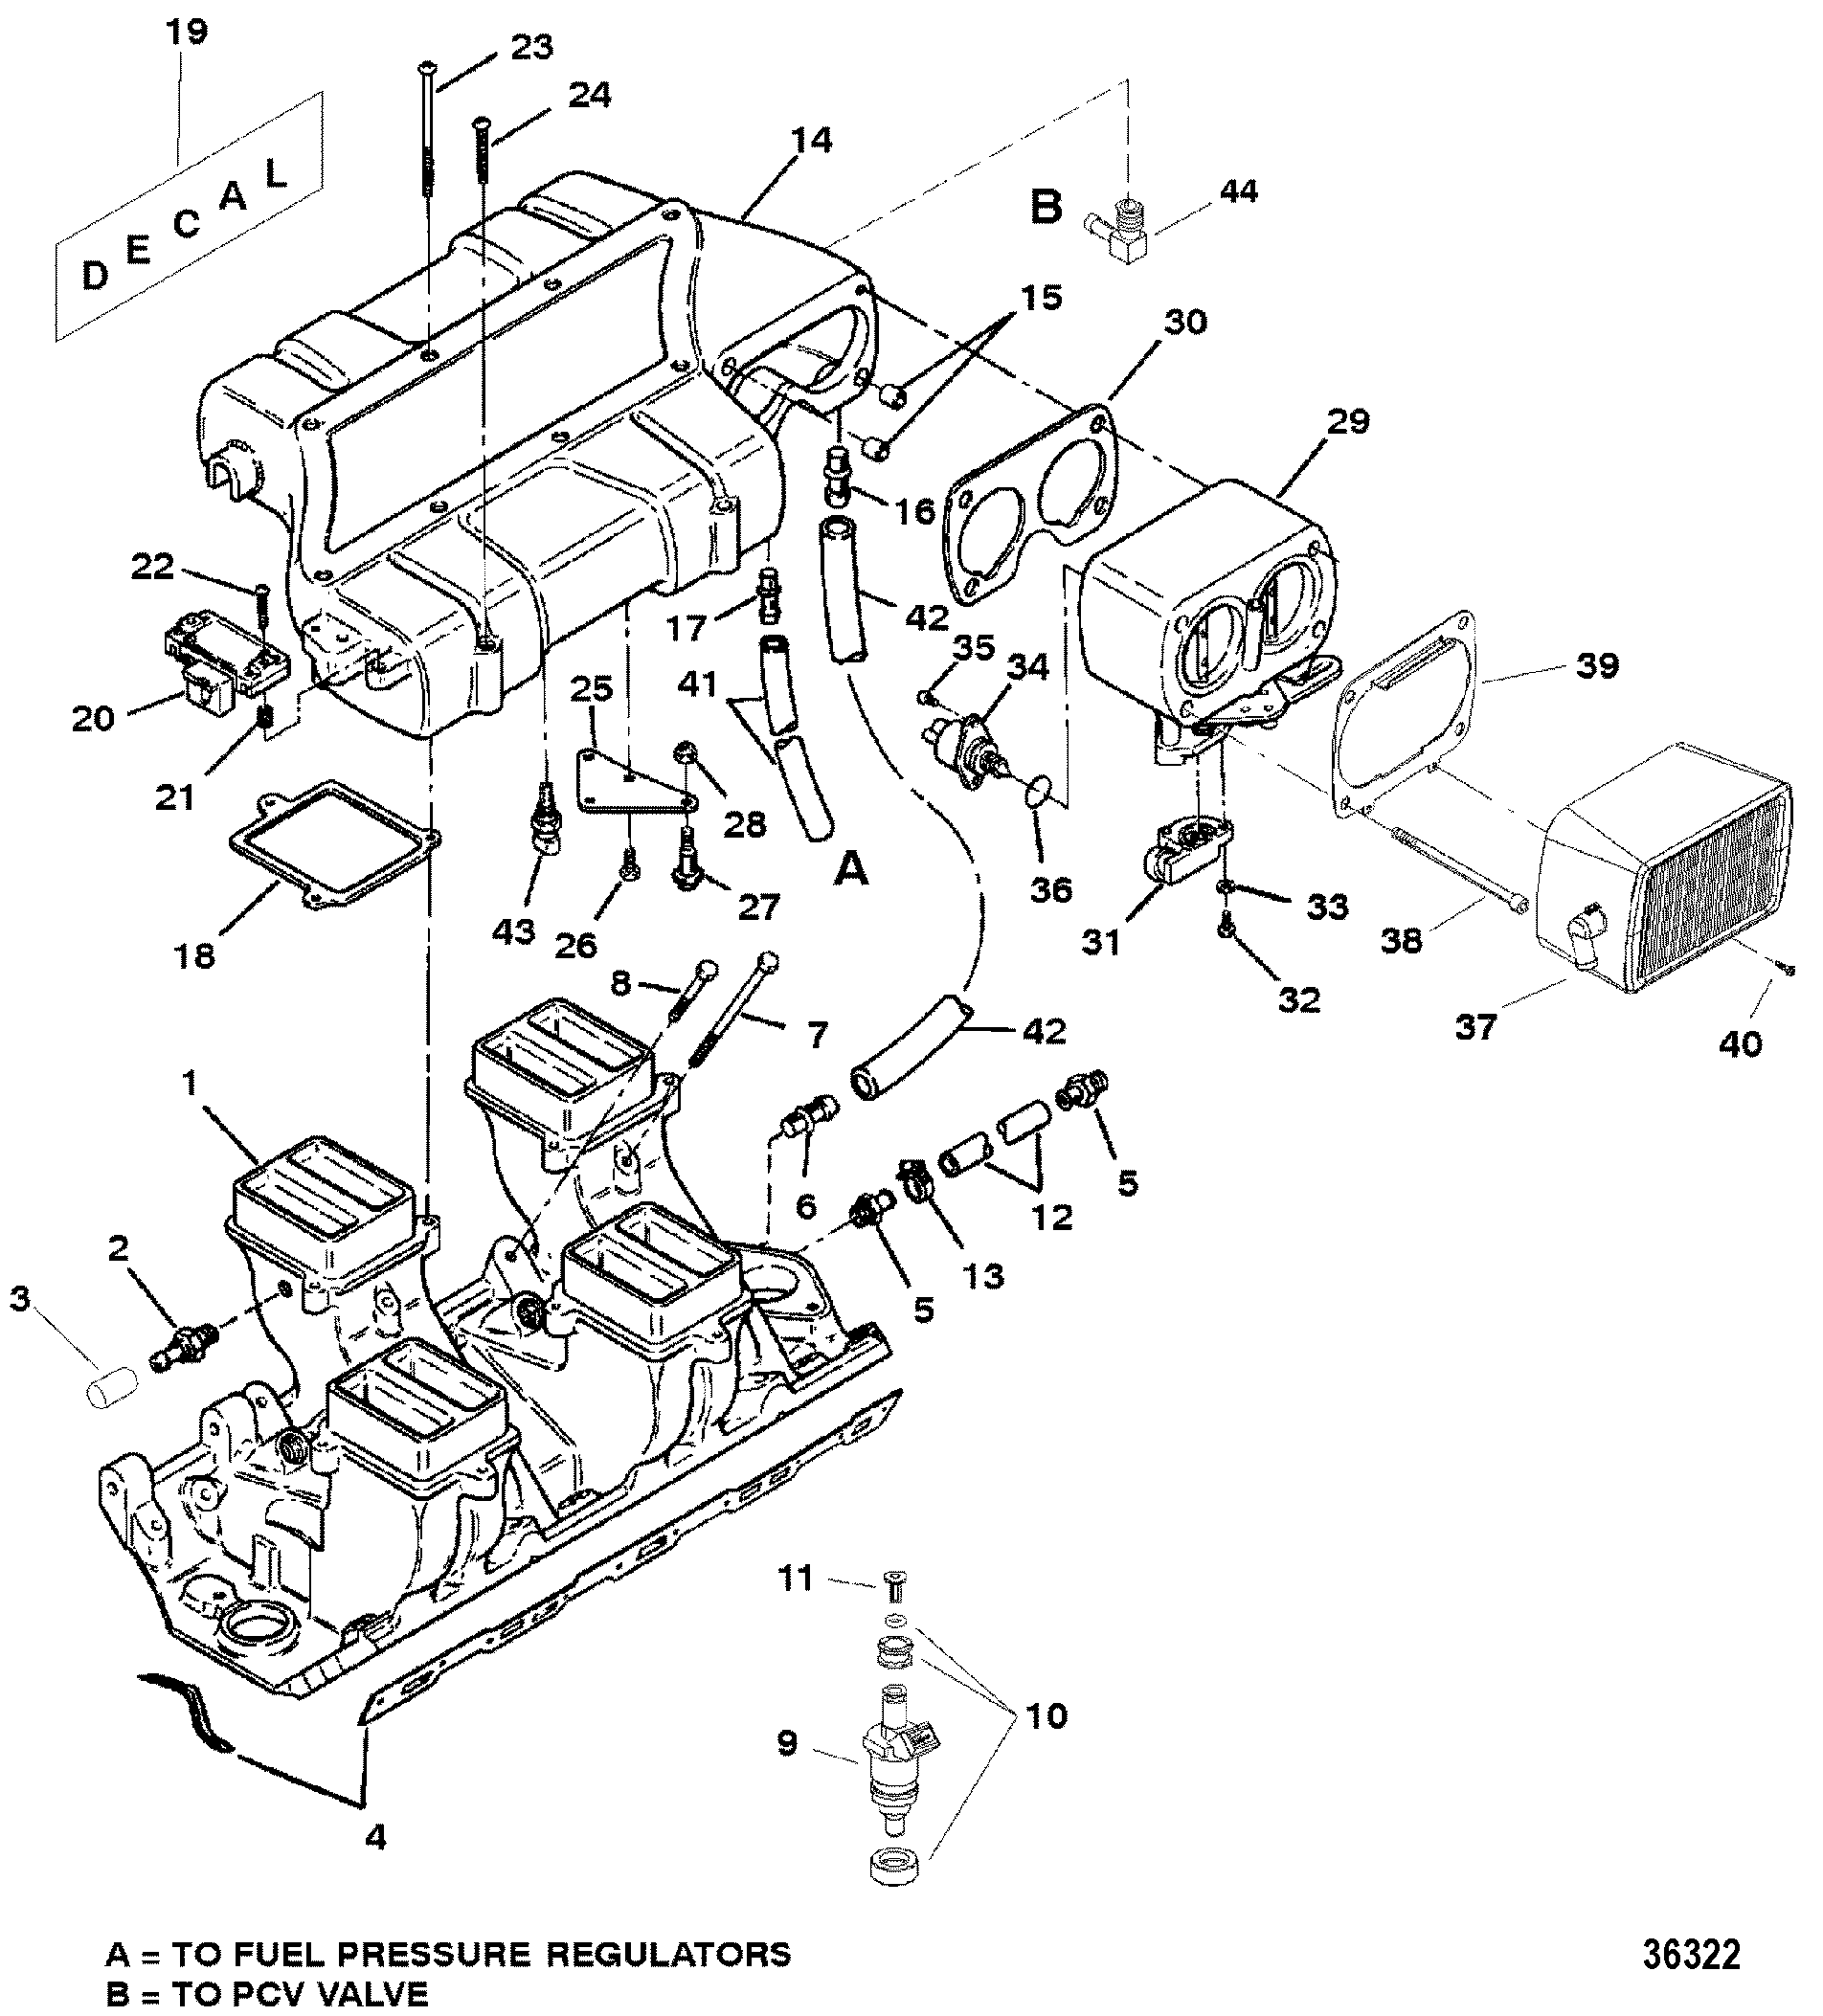 36322 intake manifold and intake plenum for mercruiser 454 502 mpi mag mercruiser 502 mpi wiring diagram at arjmand.co